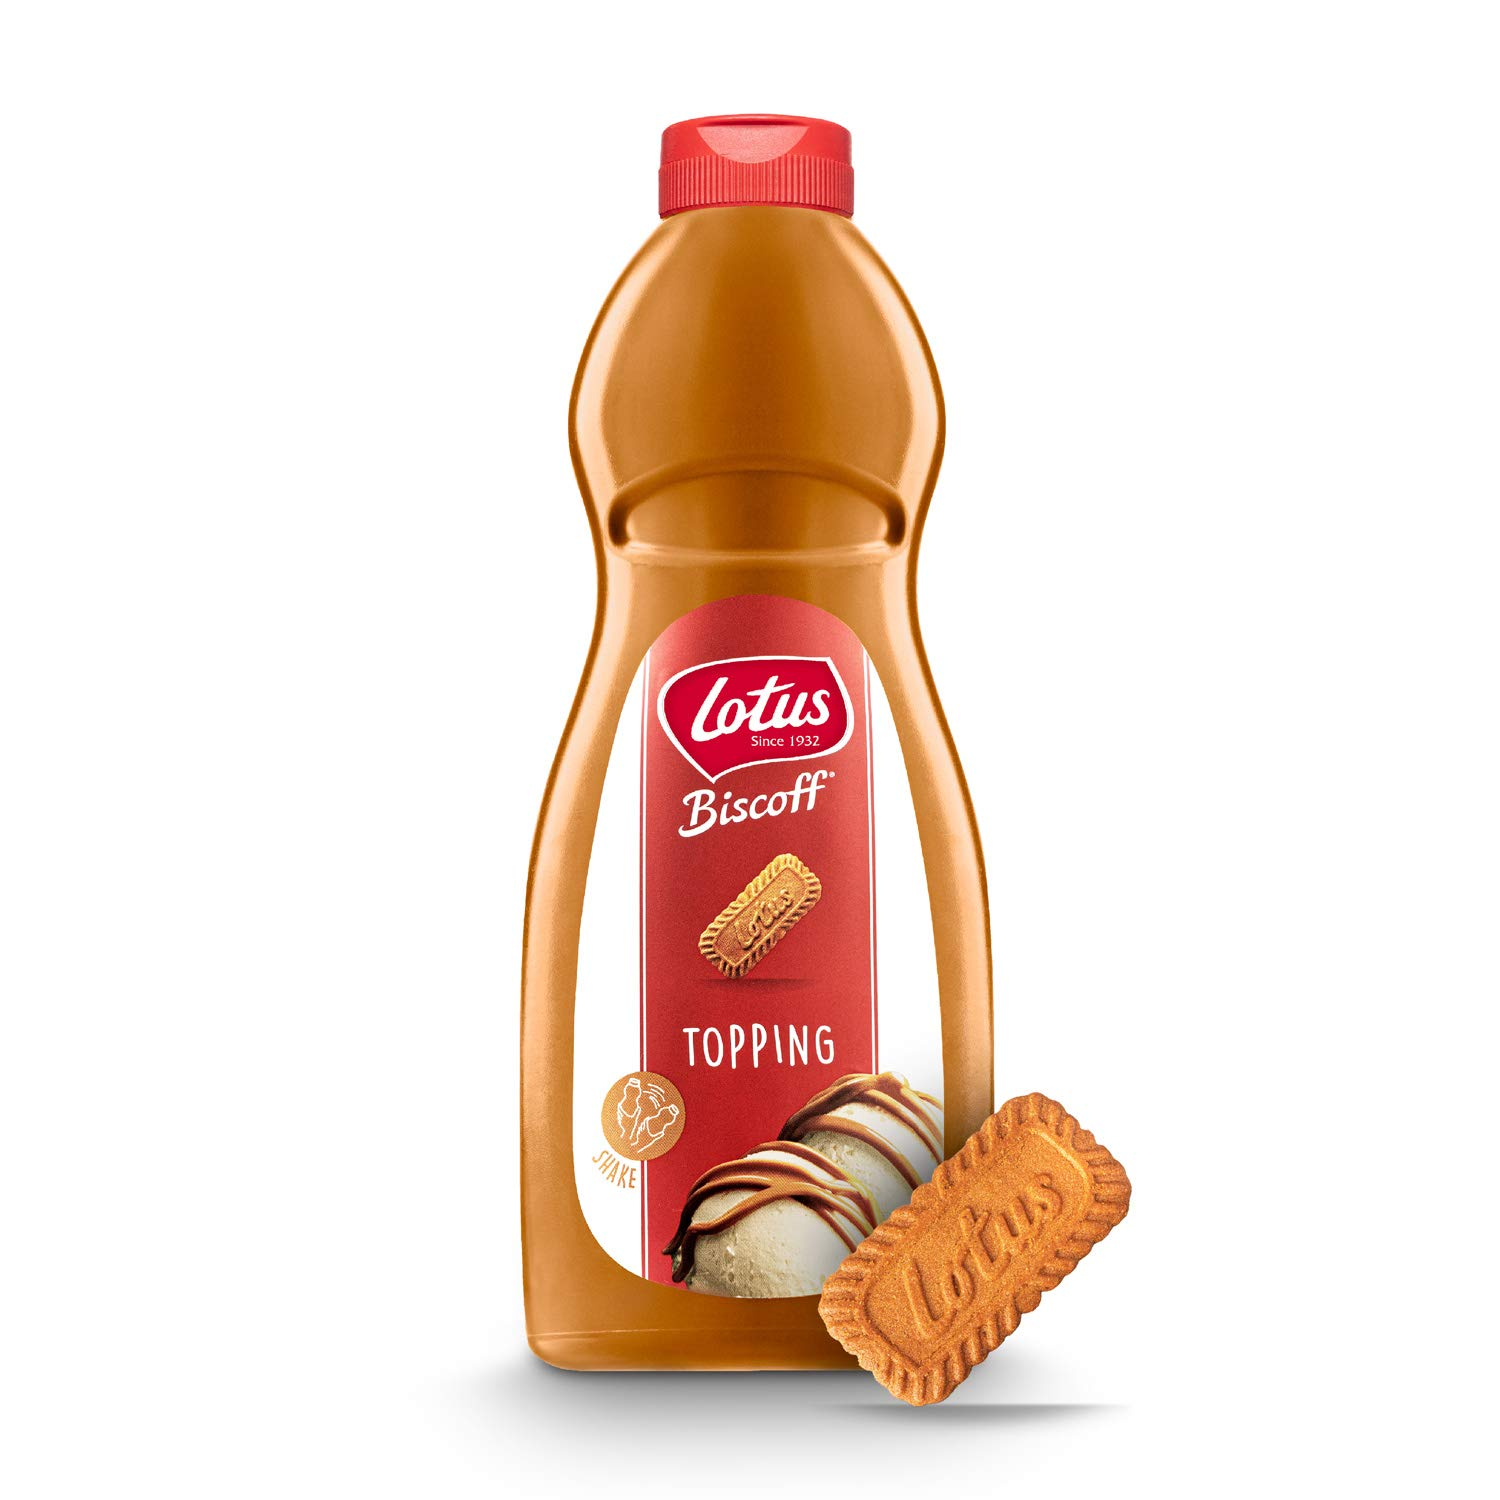 Biscoff Lotus Topping Sauce, 1kg Squeezy Bottle